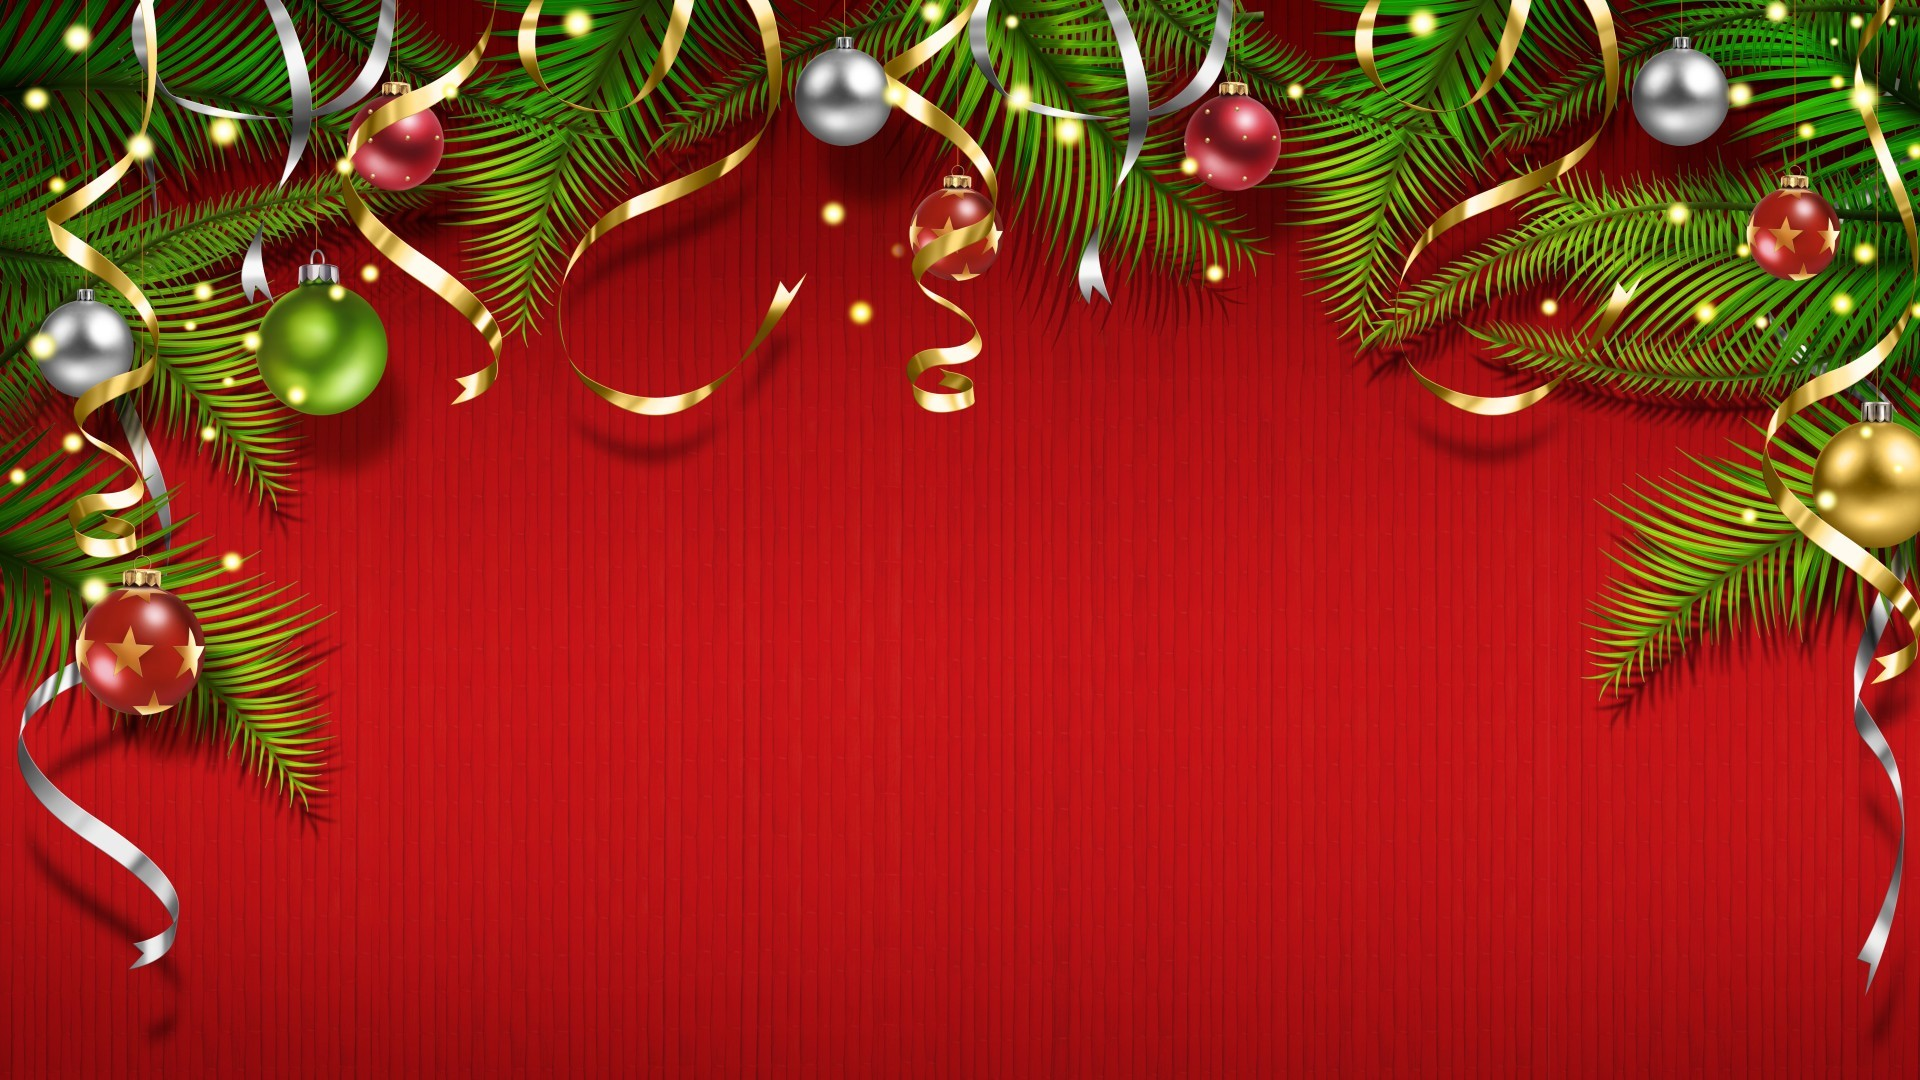 1920x1080 Download Christmas Wallpapers HD.